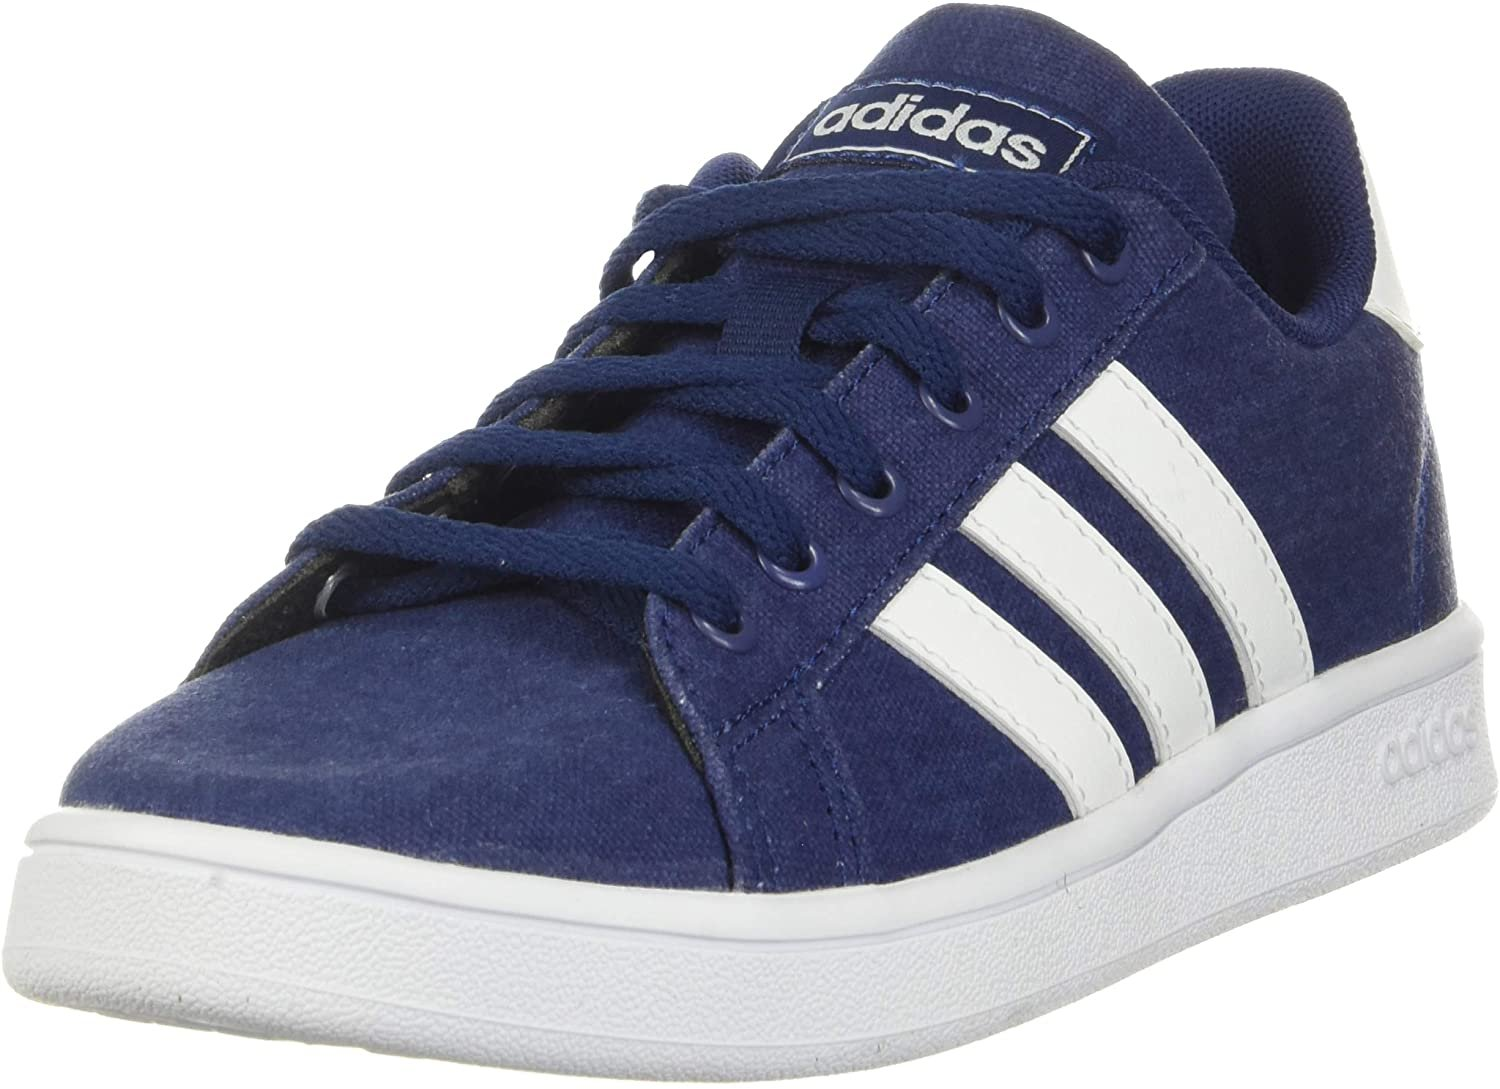 adidas Unisex-Child Grand Court Sneaker